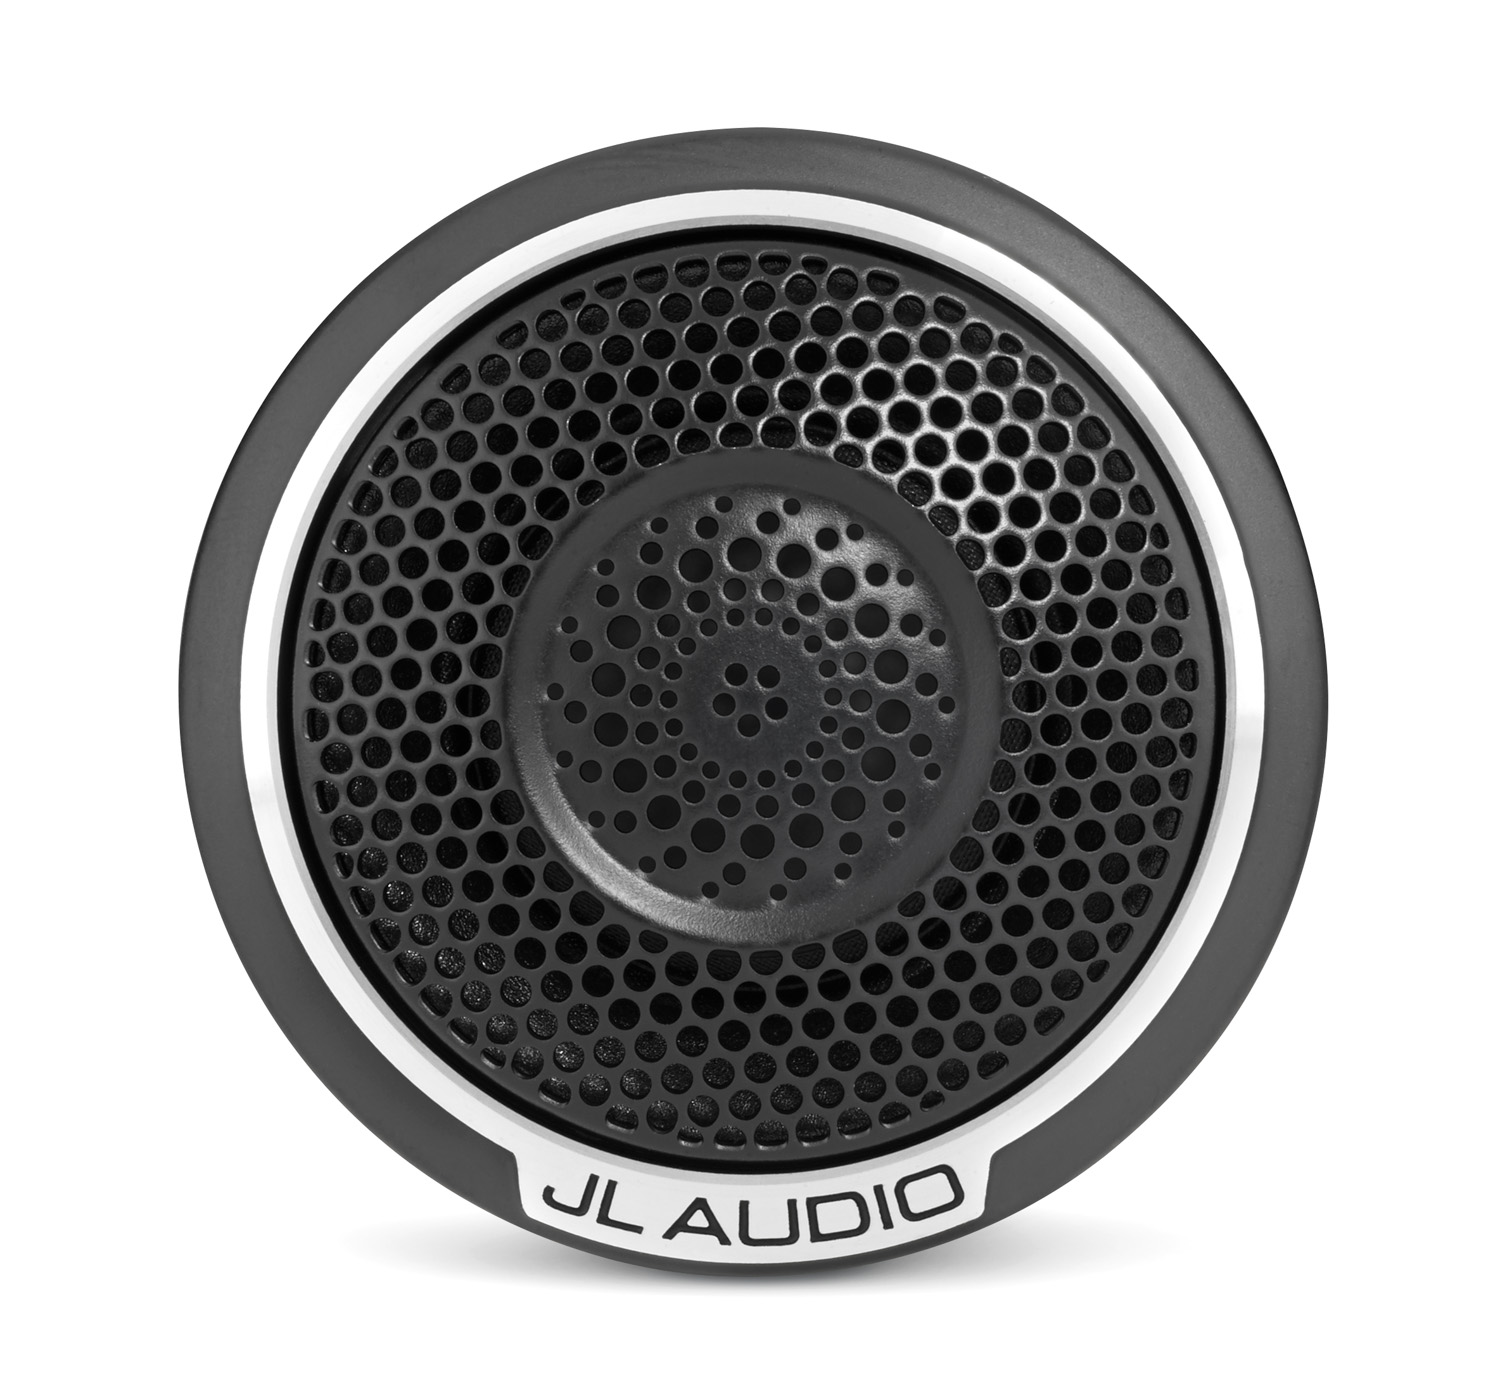 Jl Audio C7 100ct 1 Inch Component Tweeter Single Explicit Car Stereo Speaker Speakers Installed In Melbourne By Customs